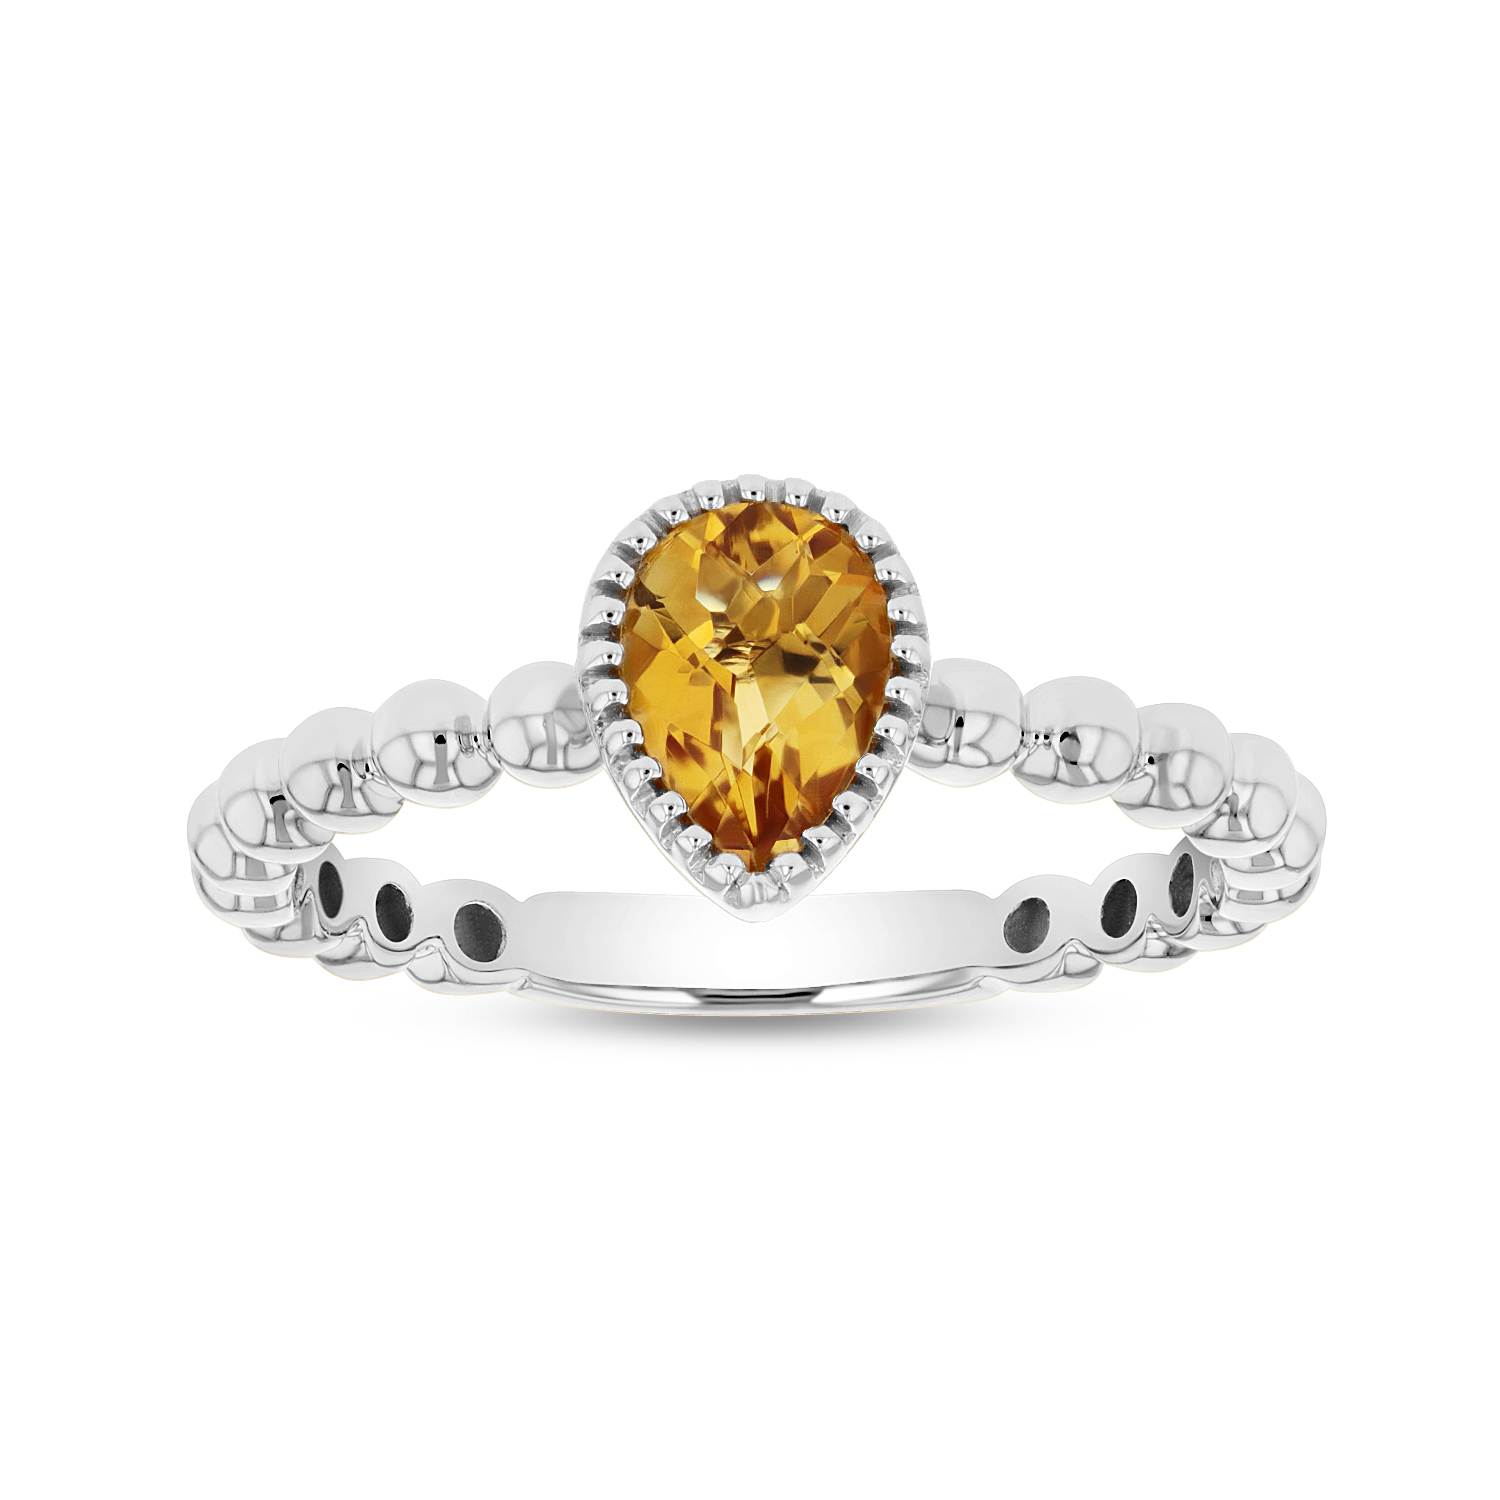 View 7x5mm Pear Shape Citrine Ring in 14k Gold